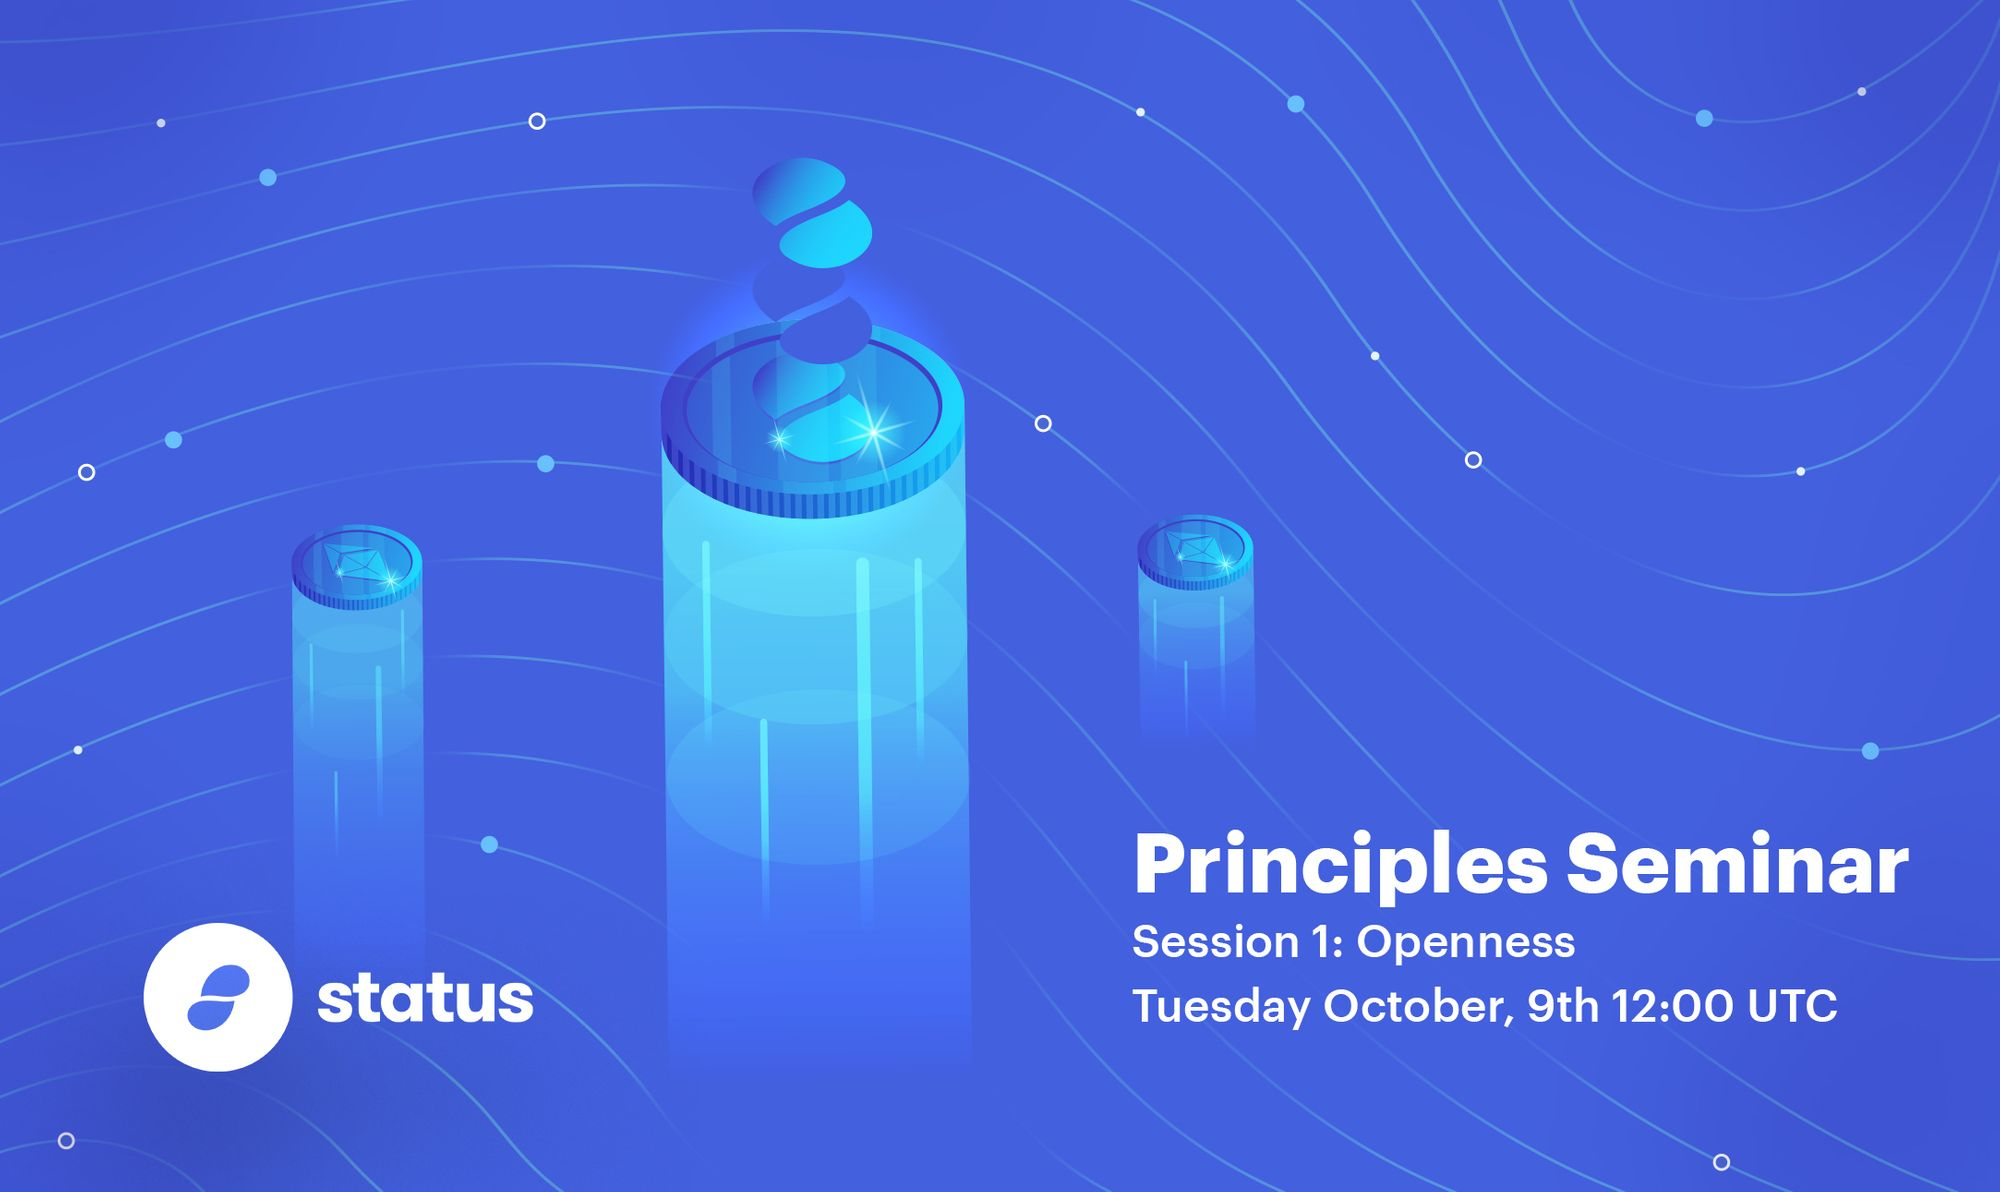 Principles Seminar - Session 1: Openness